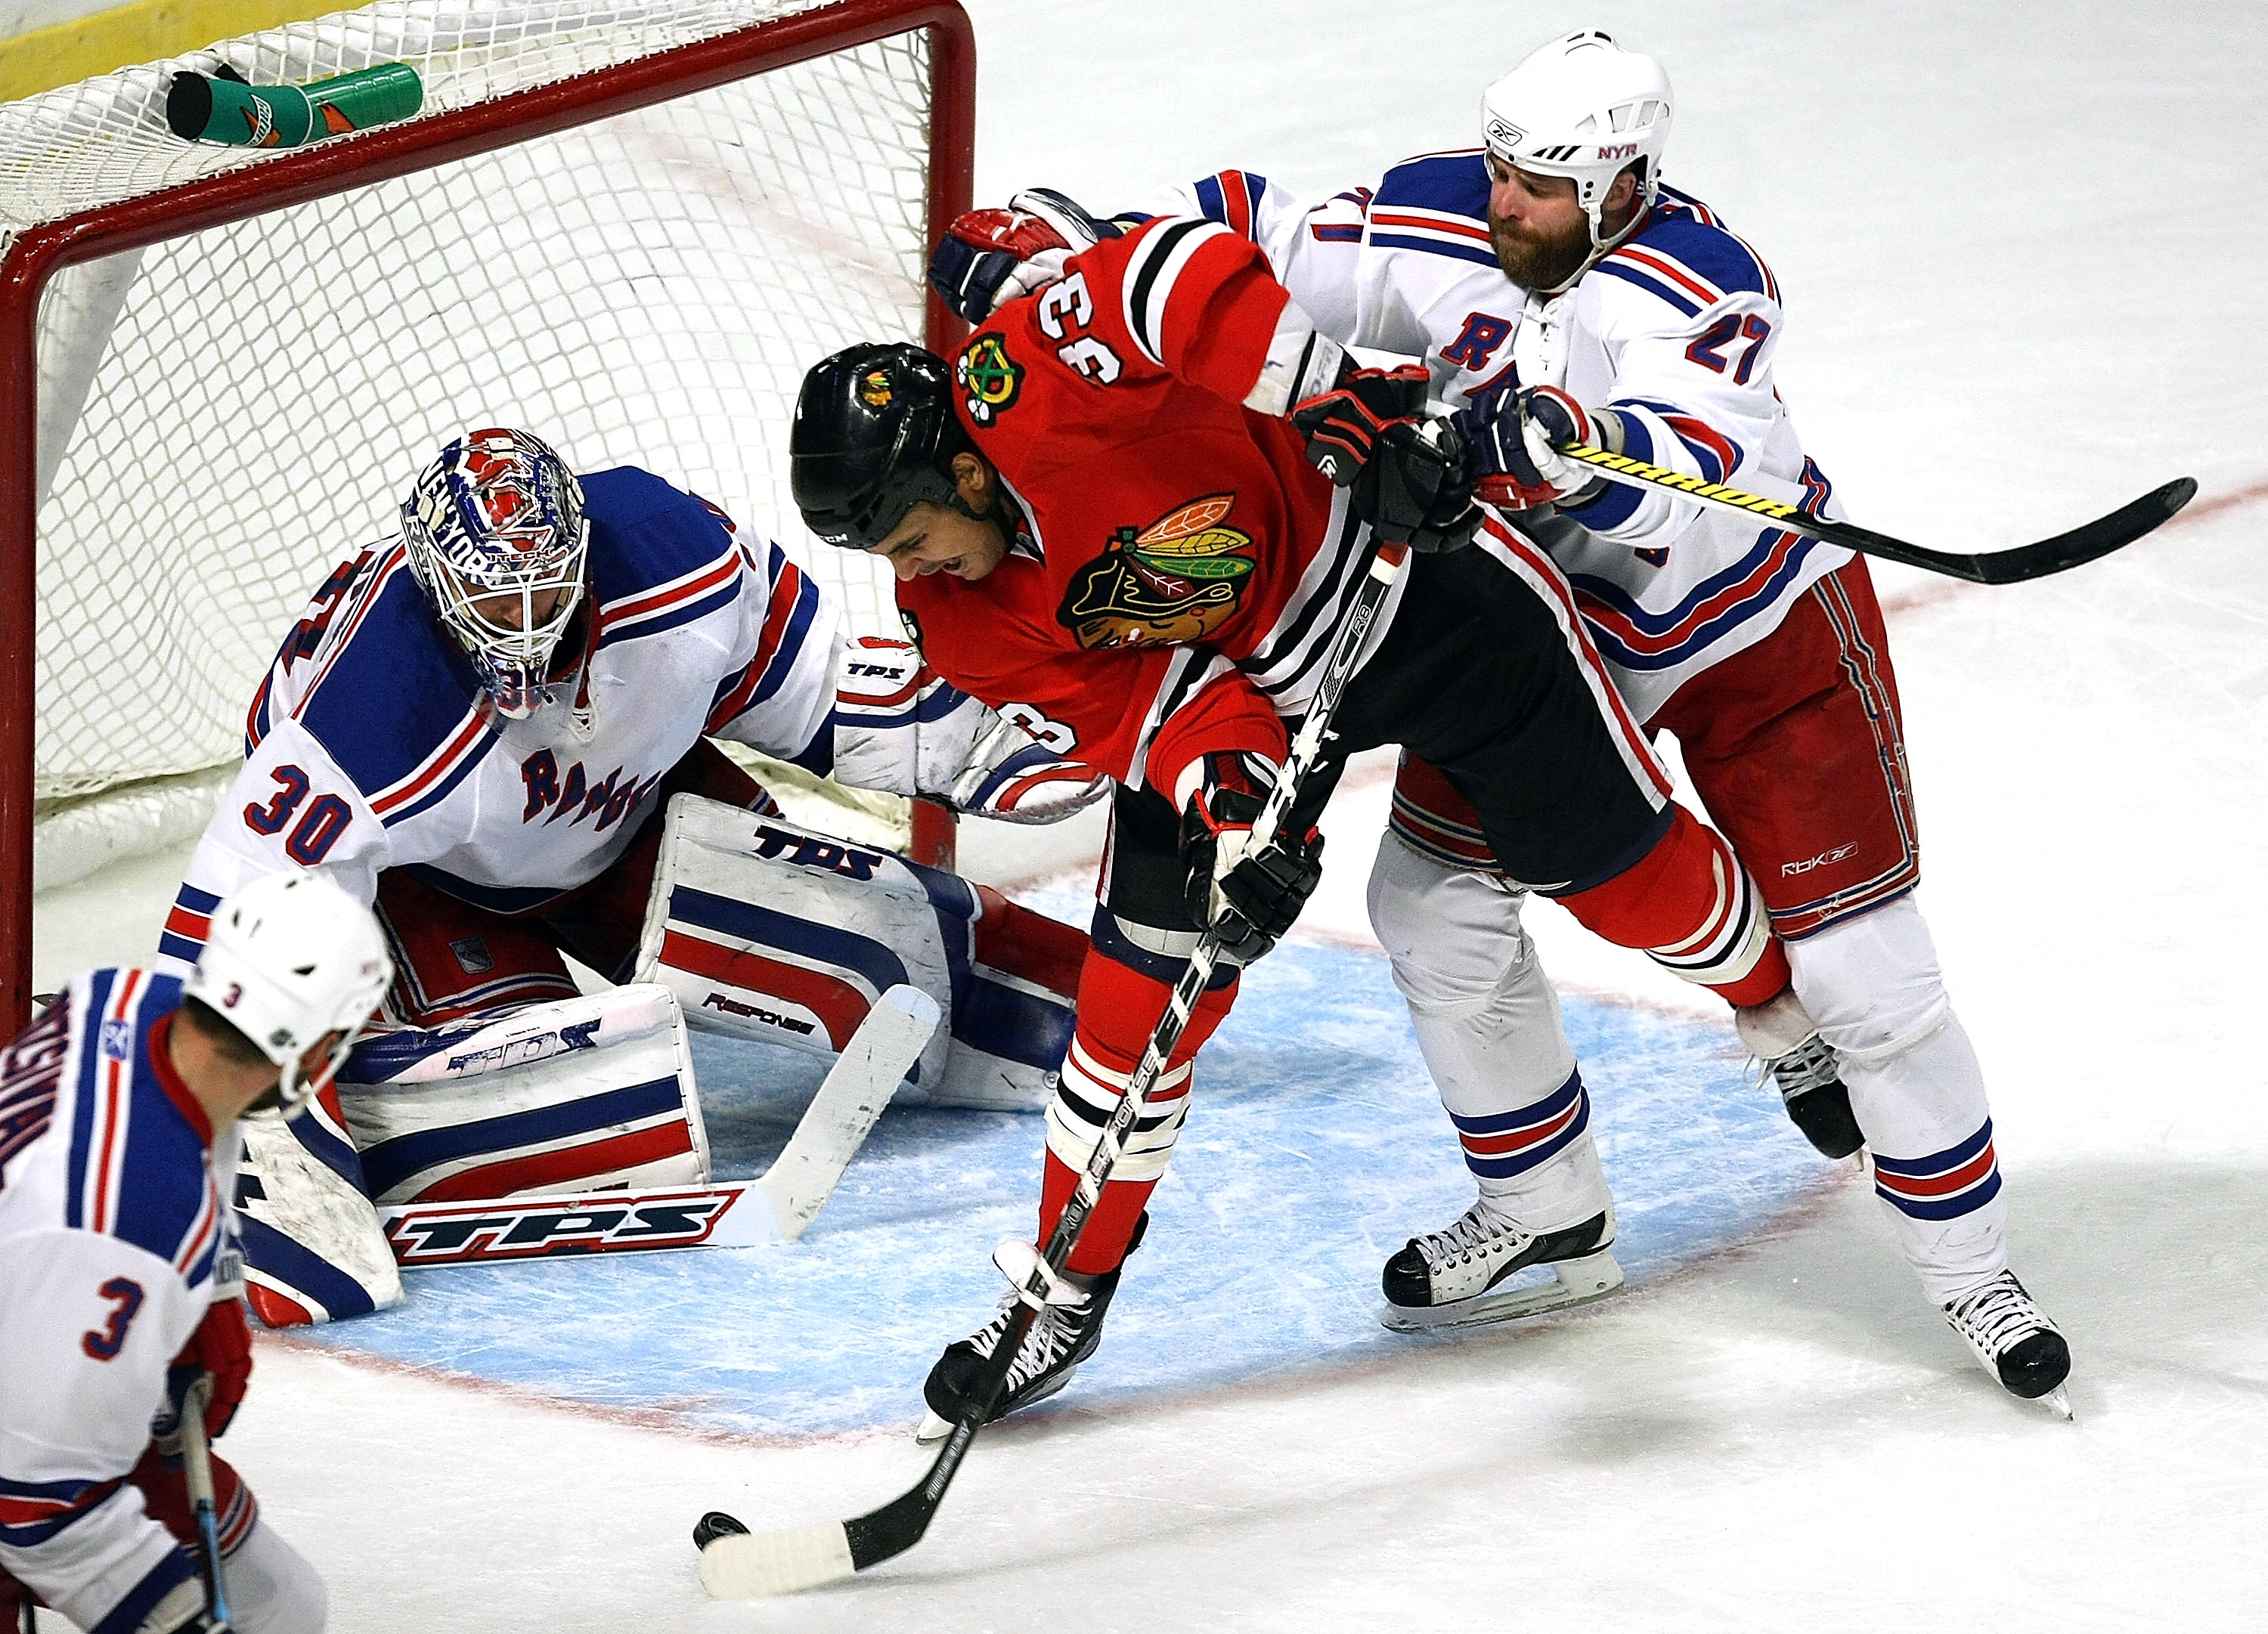 CHICAGO - JANUARY 16: Dustin Byfuglien #33 of the Chicago Blackhawks attempts a shot against Henrik Lundqvist #30 of the New York Rangers as defenseman Paul Mara #27 pushes him on January 16, 2009 at the United Center in Chicago, Illinois. The Rangers def